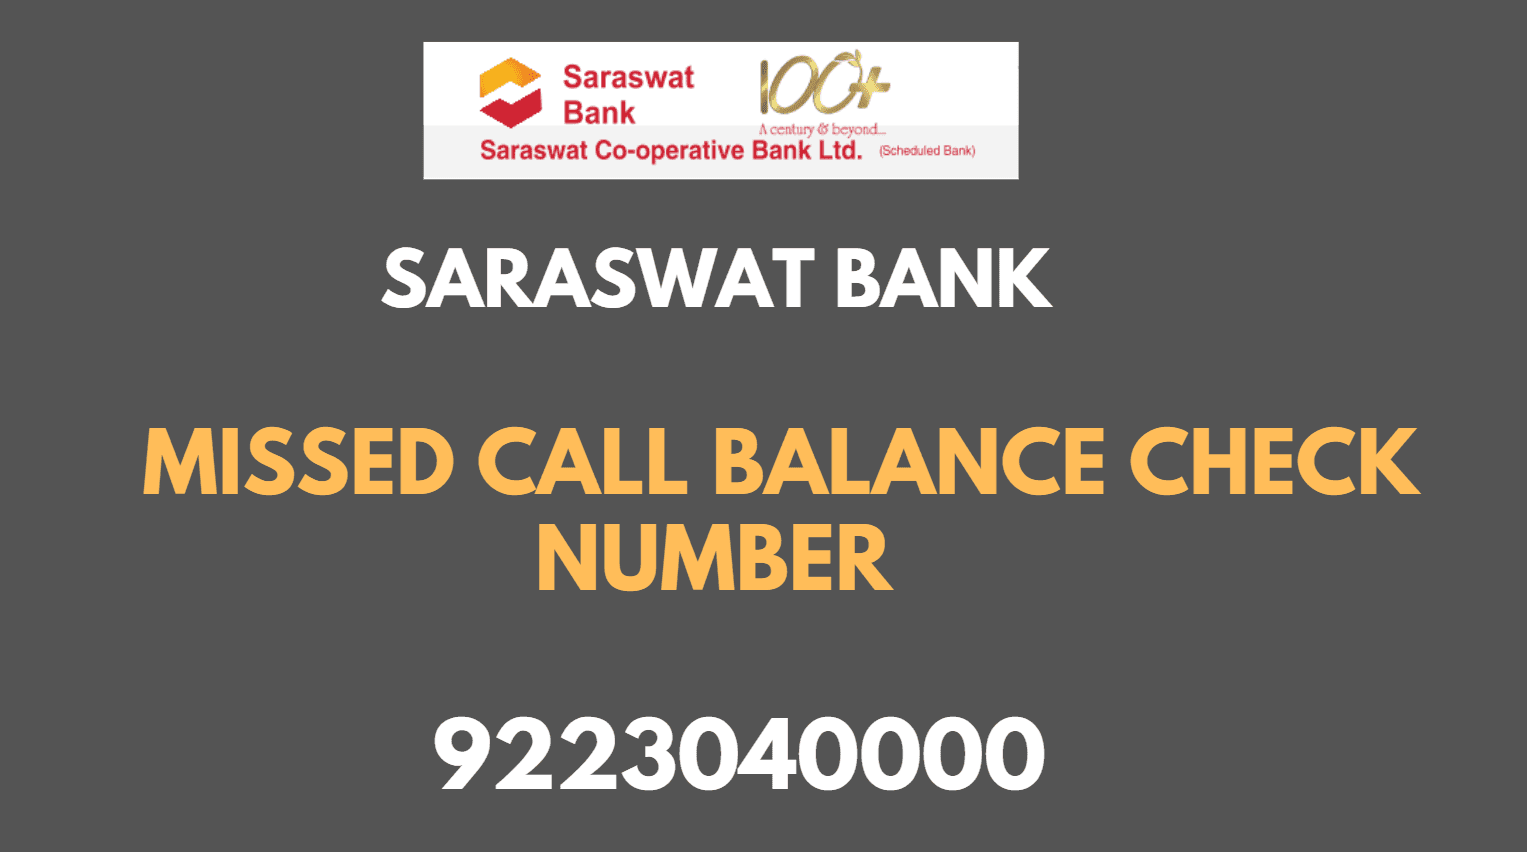 Saraswat Bank Missed Call Balance Check Number